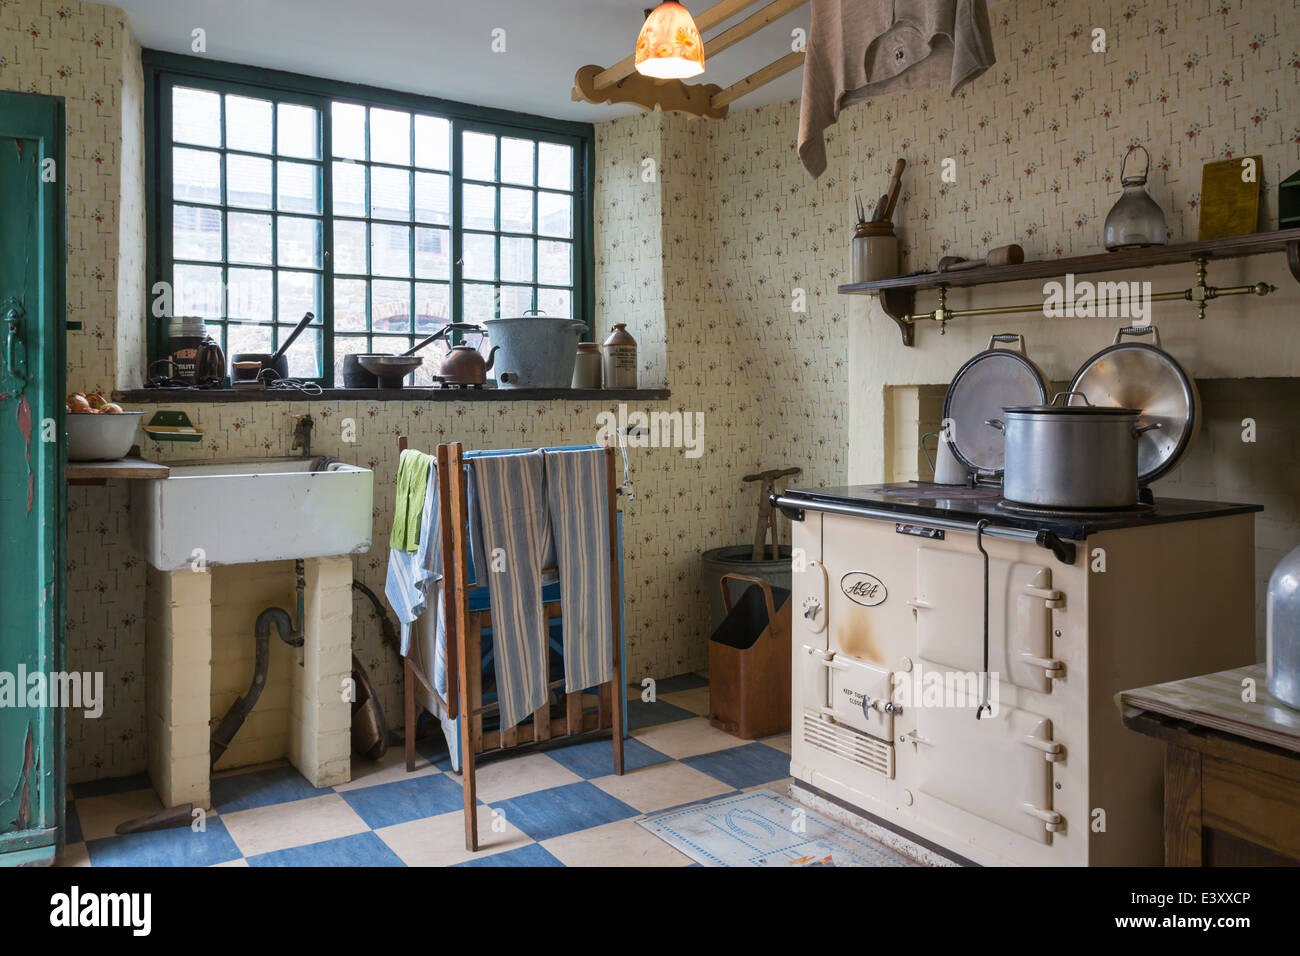 Exceptional Old Fashioned Farm Kitchen Beamish Living Open Air Museum   Stock Image